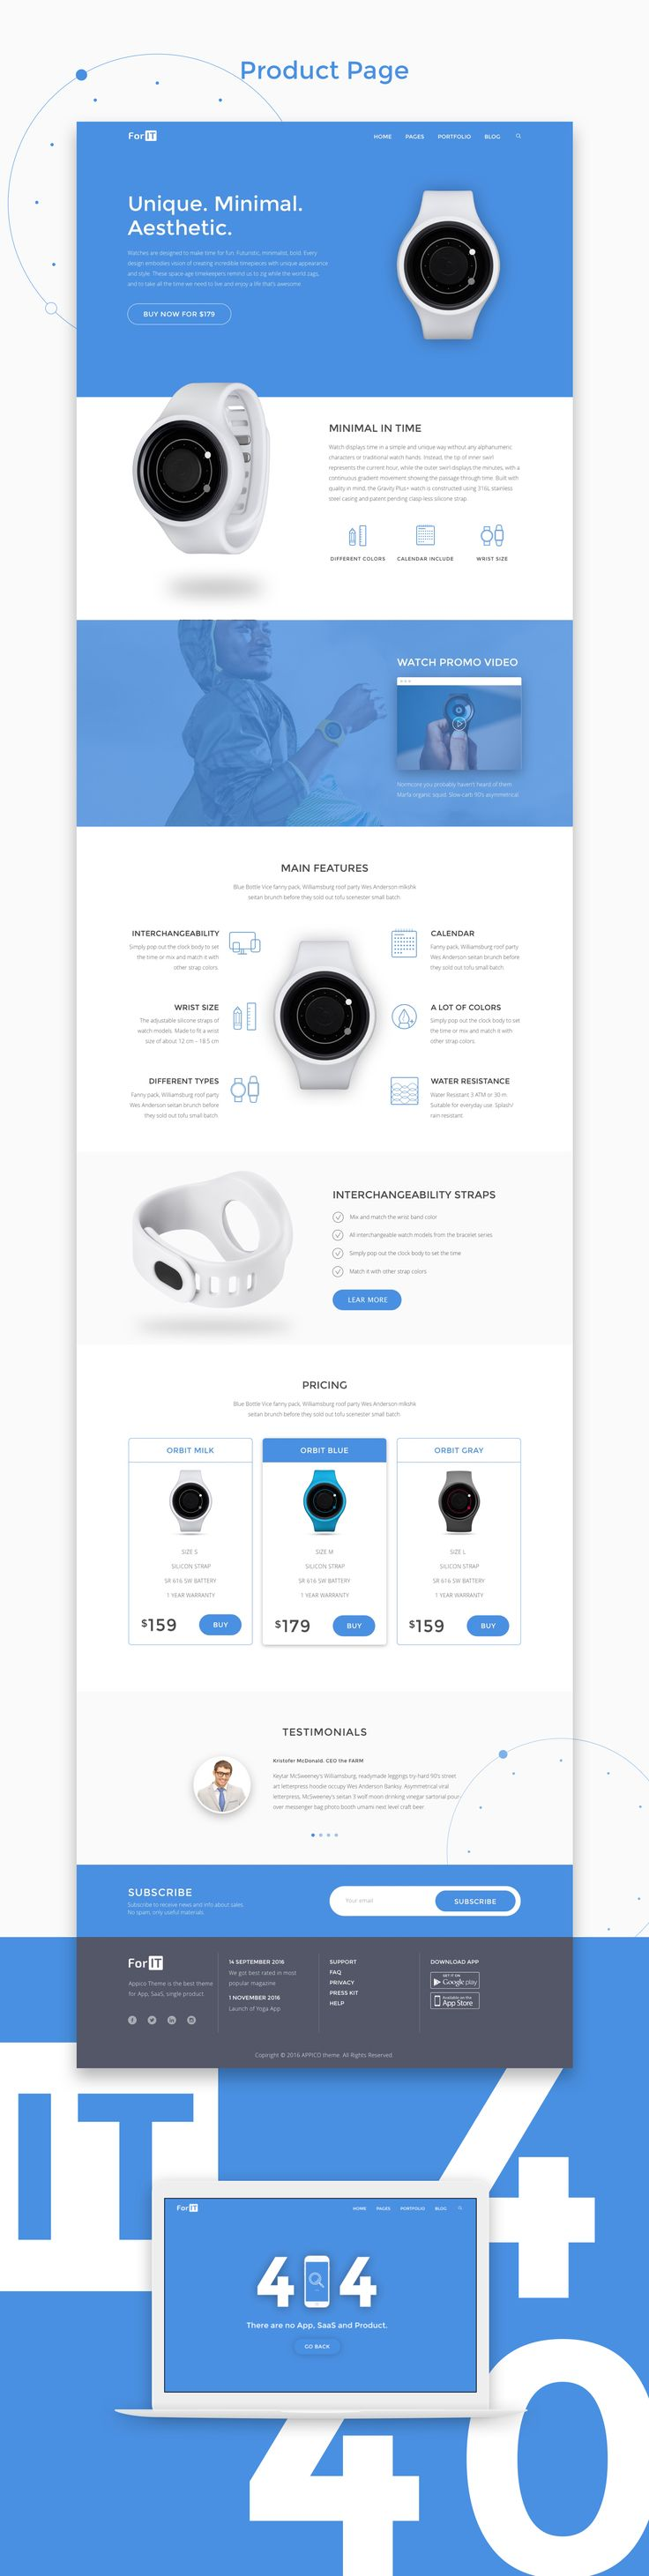 We created new WordPress theme for StartUps. We know how important to have good web for your new project and how difficult to do it. So... Behance case. Appreciate it, if you like: https://www.behance.net/iondigi Buy ForIT theme on Themeforest: https://themeforest.net/item/forit-startup-wordpress-theme-for-software-app-and-product/19183016?ref=Iondigital